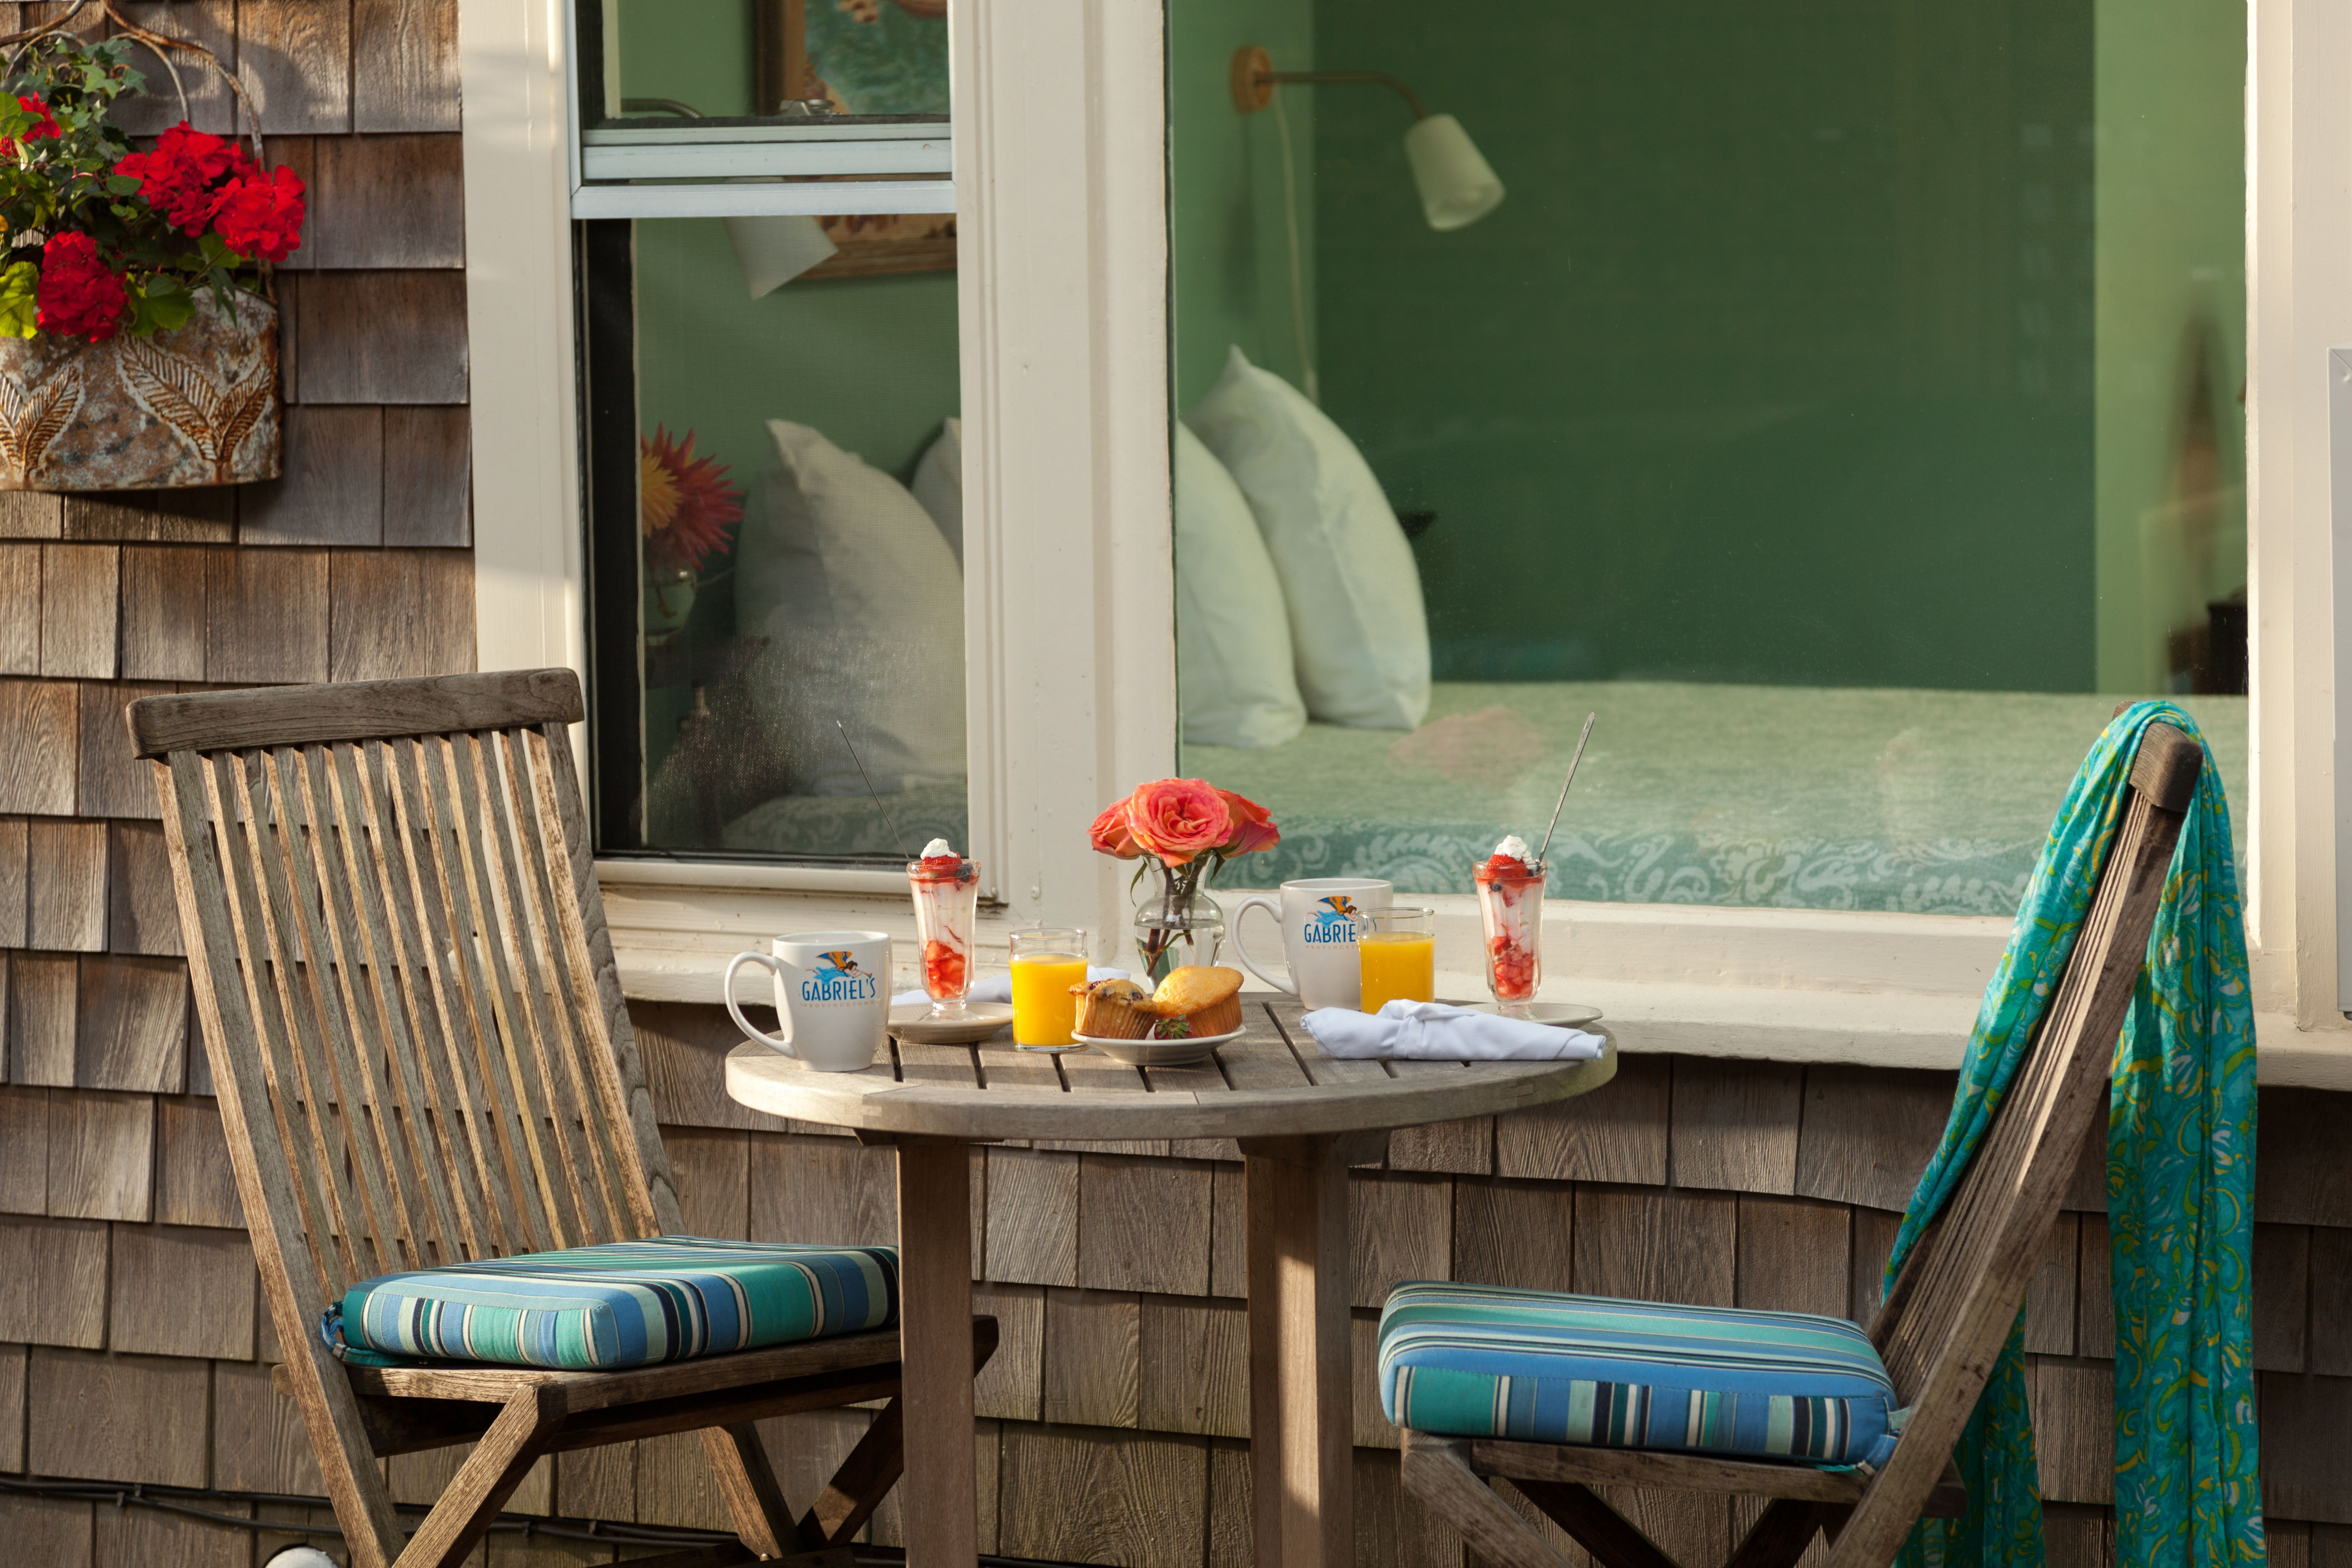 The Grace Apartment Interiordesign Kidfriendly Familyfriendly Ptown Provincetown Vacation Capecod Lodgin Outdoor Furniture Sets Luxury Hotel Home Decor